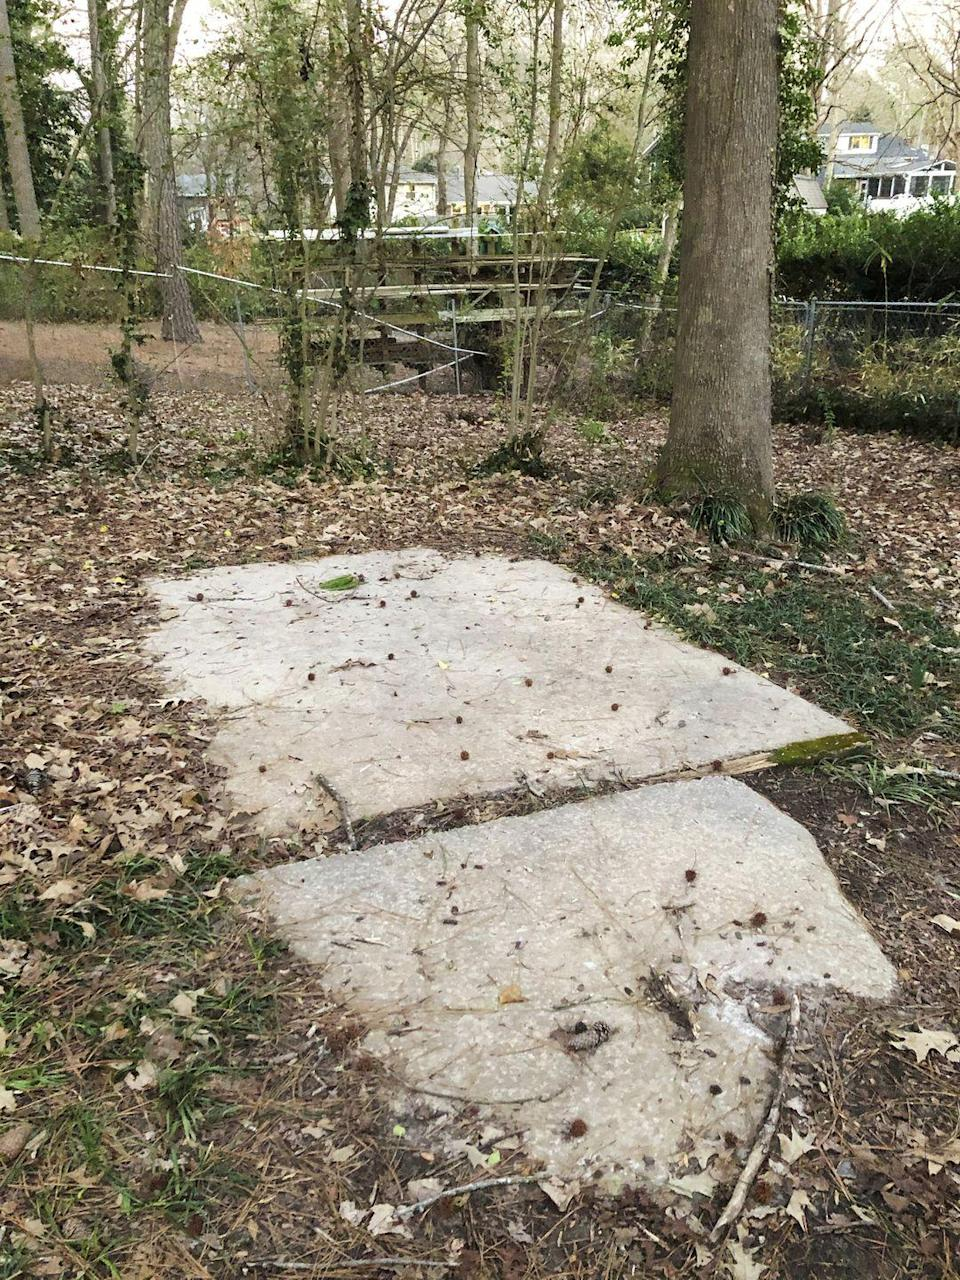 <p>A set of disregarded concrete pads sat unused in the wild and overgrown yard.</p>